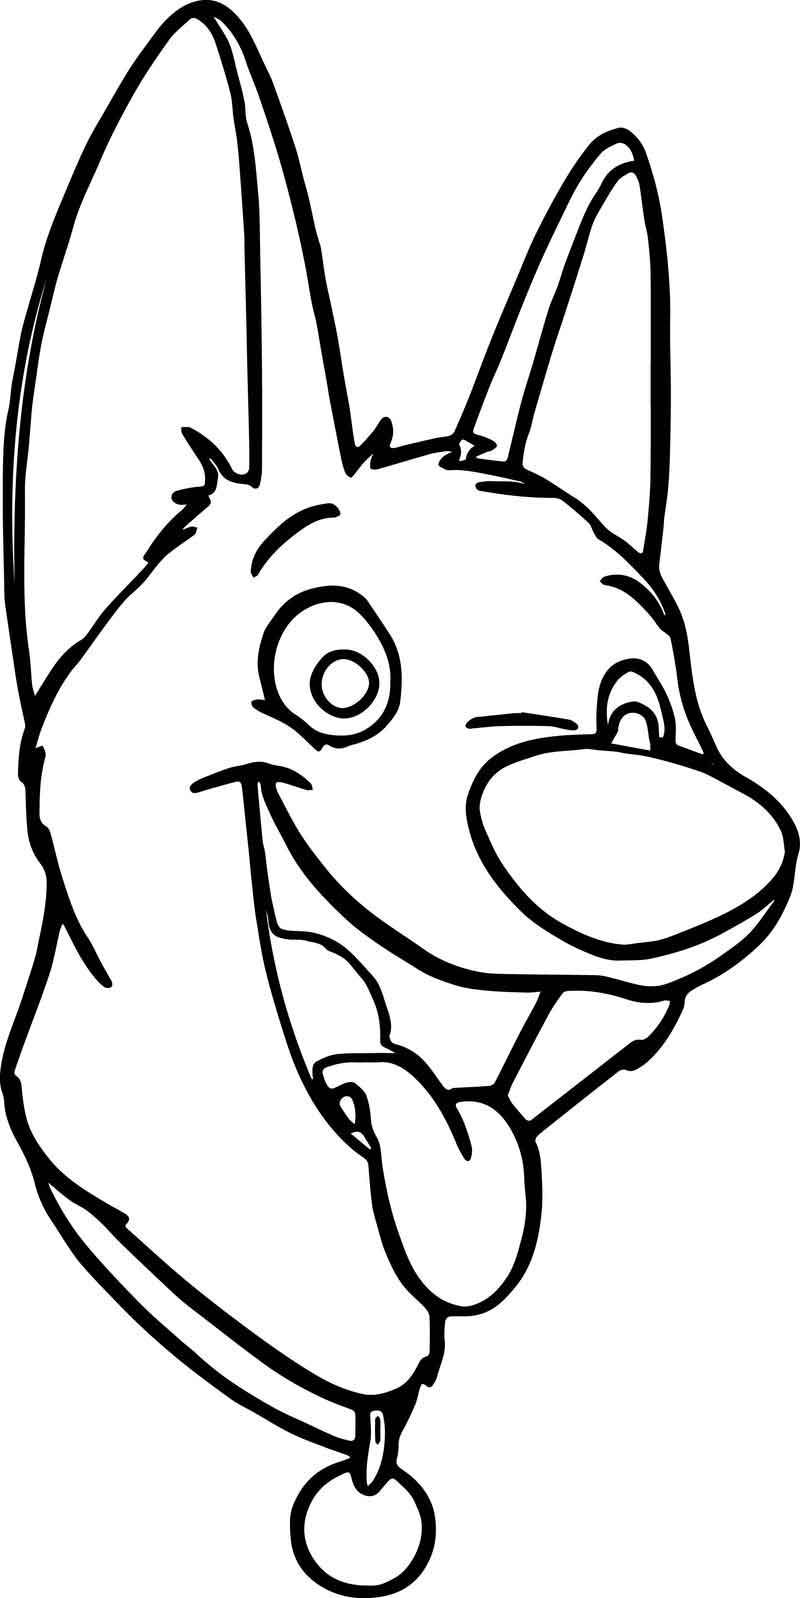 Bolt Dog Face Coloring Pages